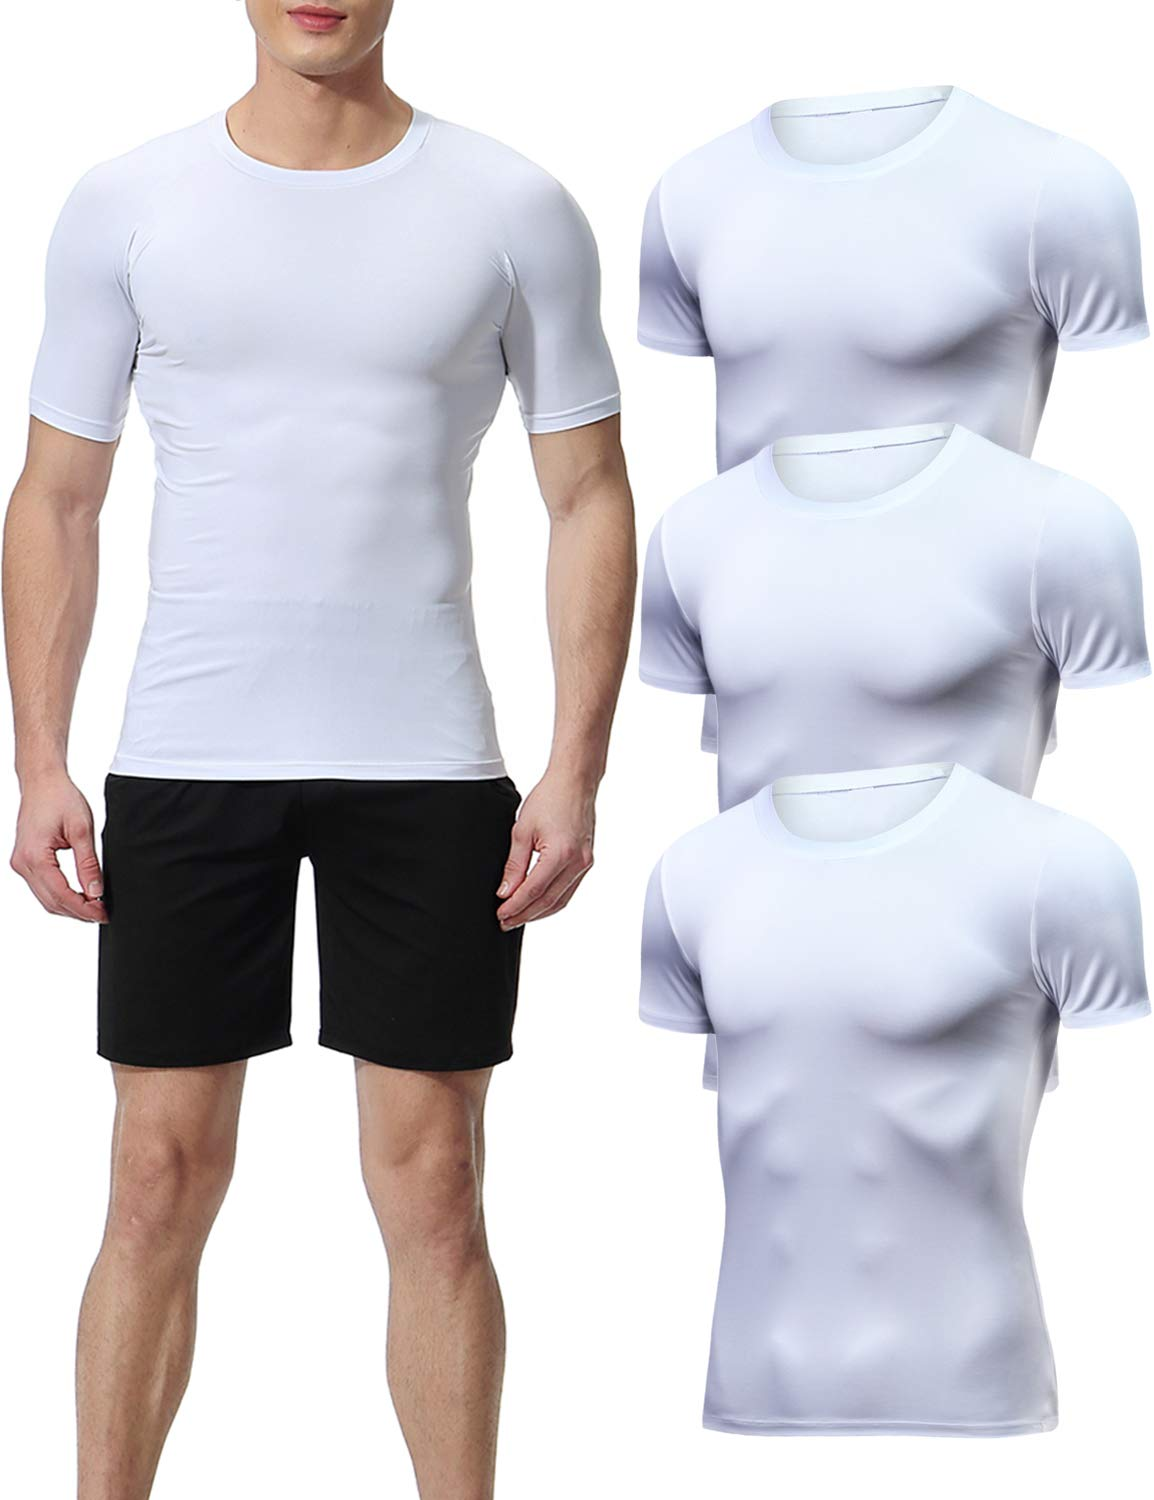 Lavento Men's Compression Shirts Cool Dry Short-Sleeve Workout Undershirts (3 Pack-Crew Neck White,Medium) by Lavento